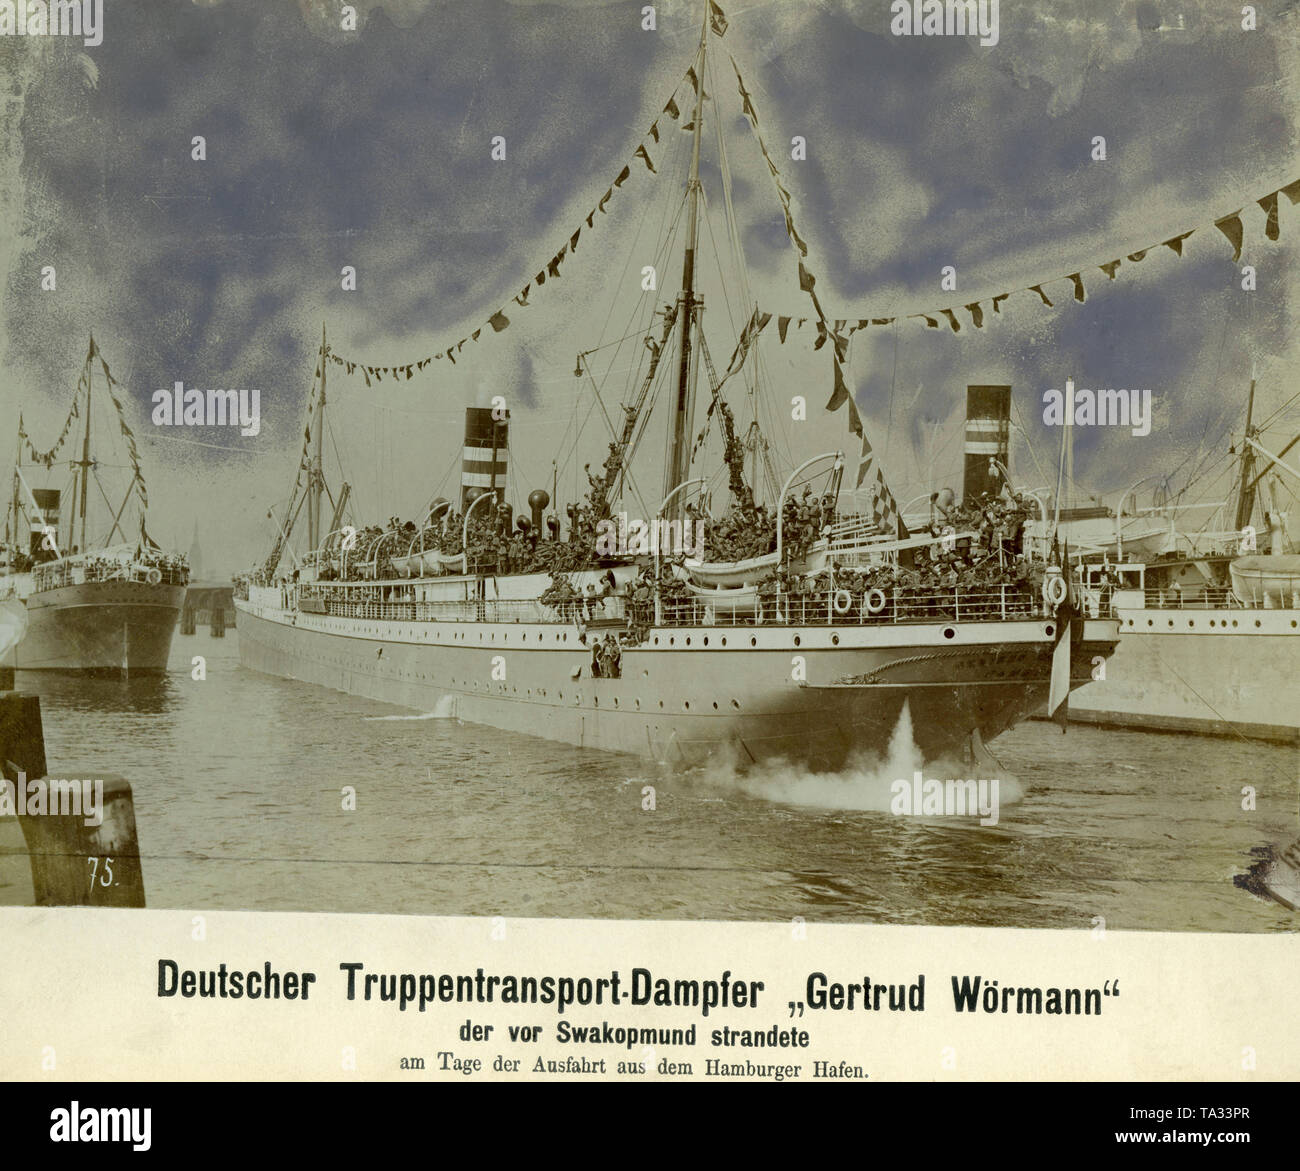 Day of the departure of the troop transport steamer 'Gertrud Woermann', which brings troops to German Southwest because of the Herero uprising. On her arrival in November 1904, the steamer stranded on the coast off Swakopmund, German South West Africa. - Stock Image